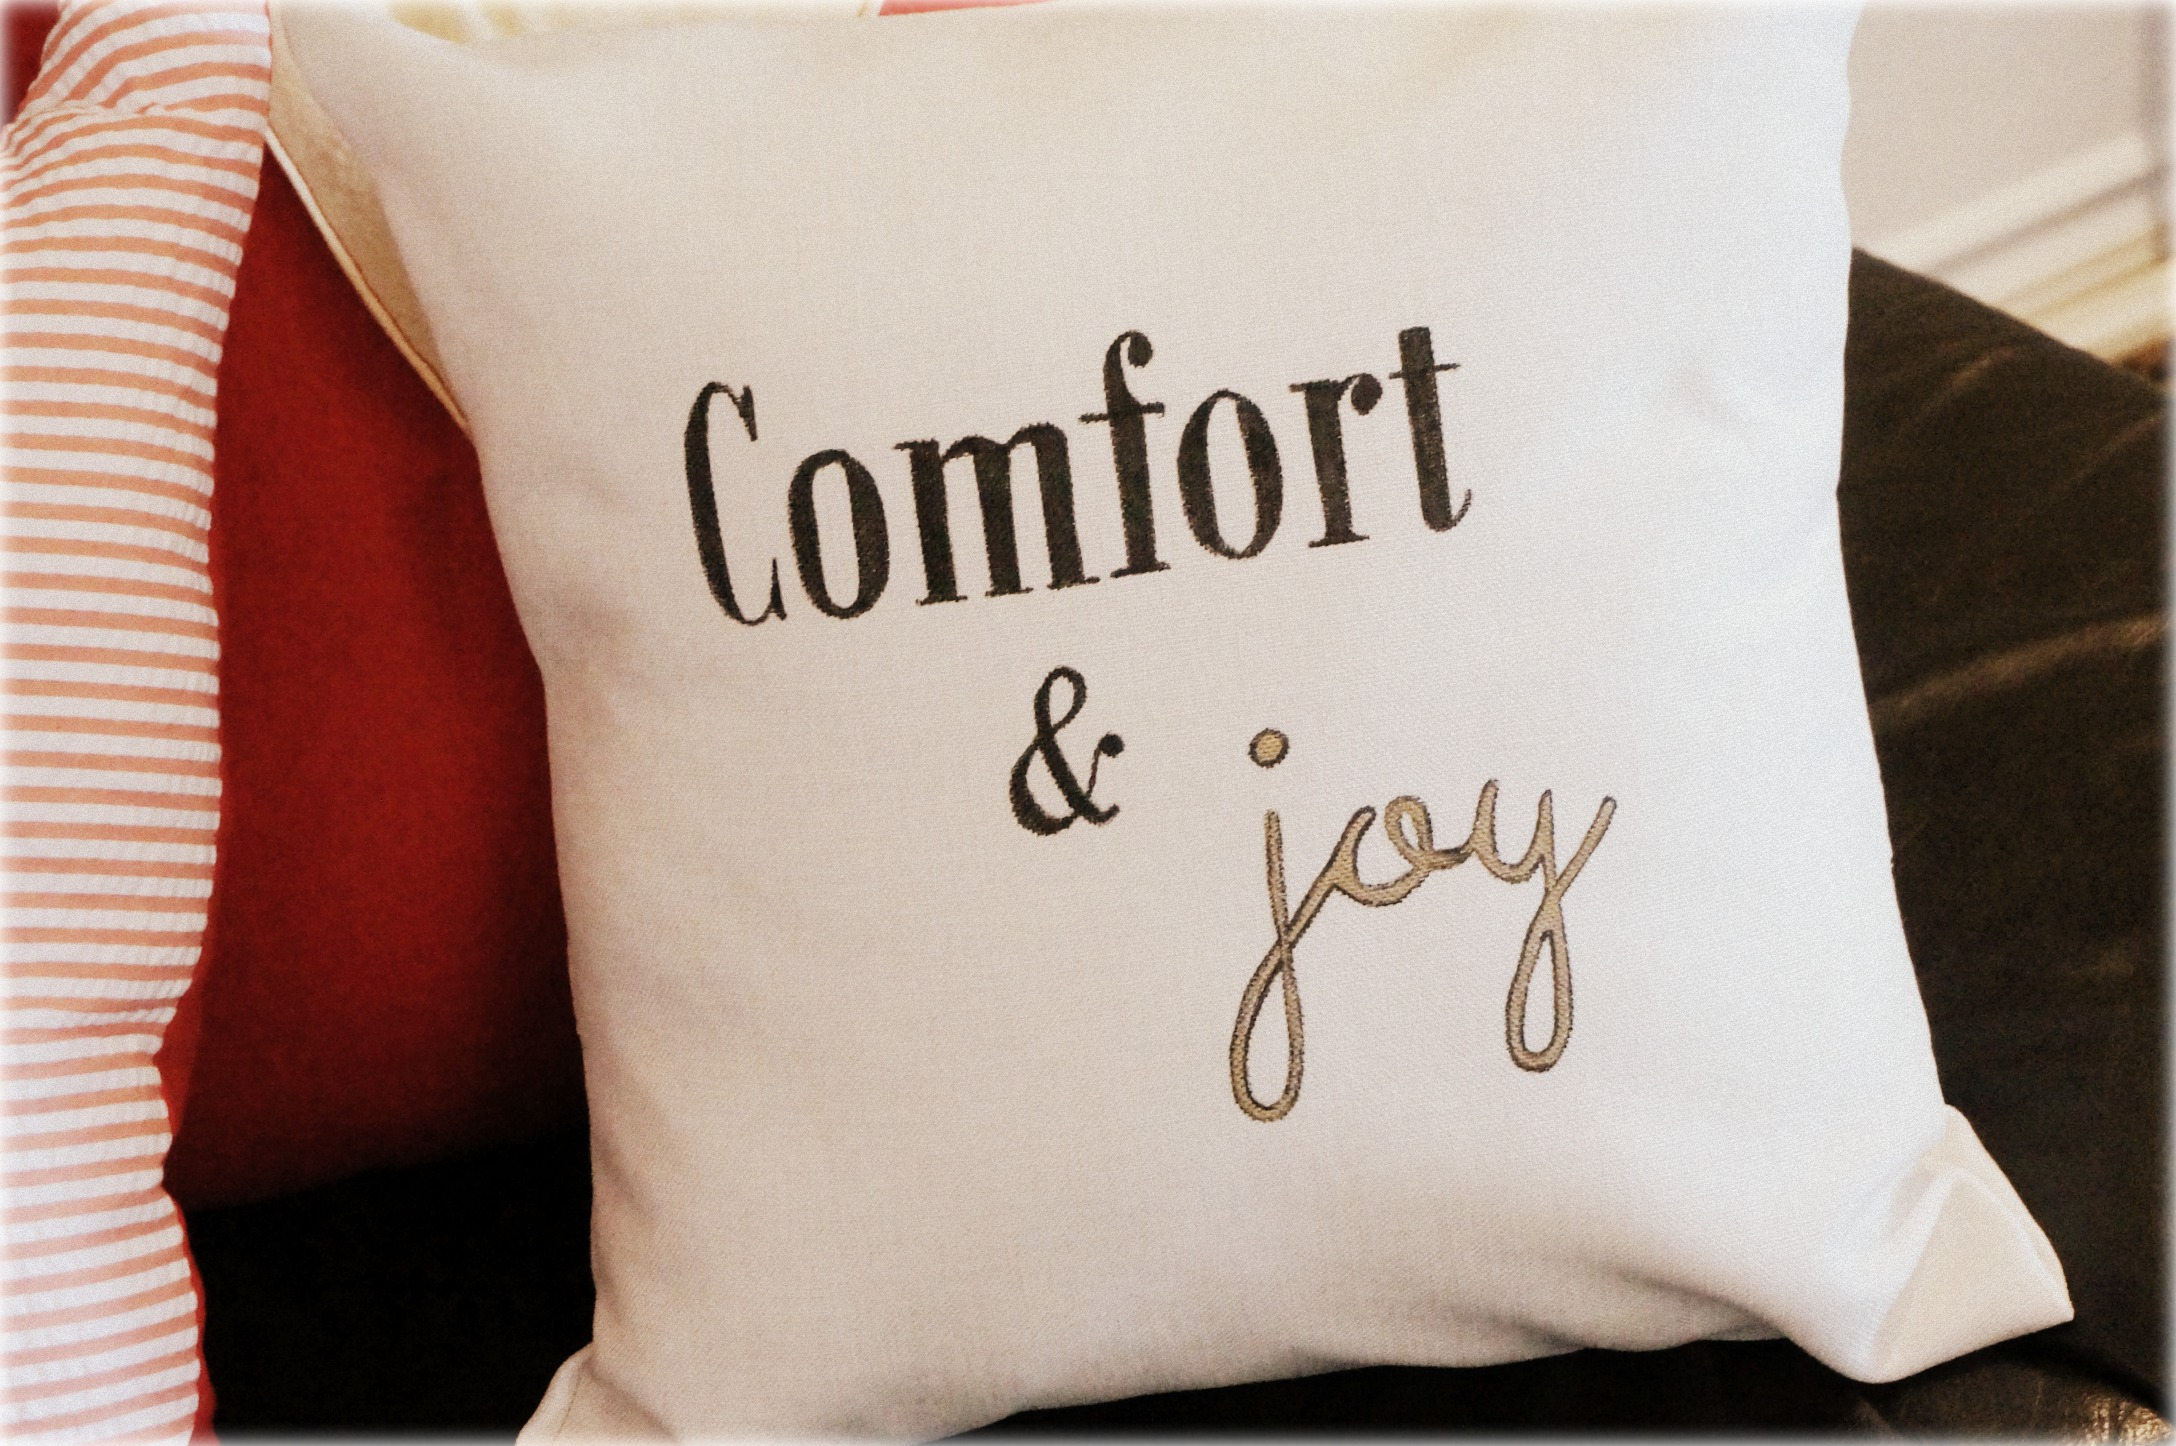 Christmas Hand-Printed Pillows: The Generous Host